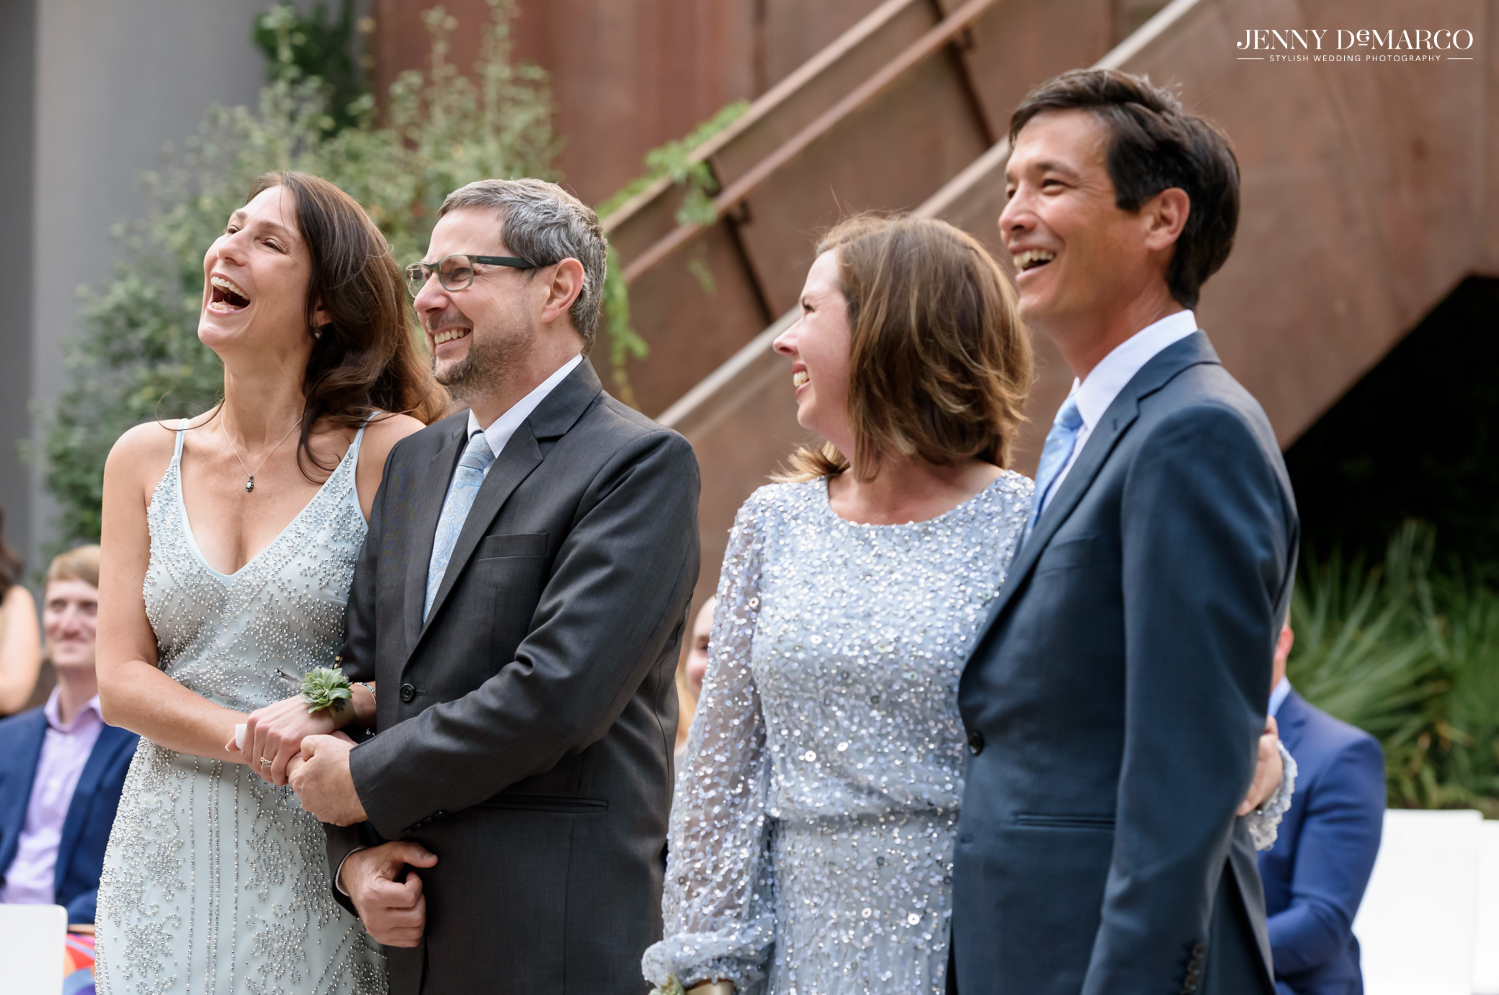 Parents of the groom laughing during the ceremony